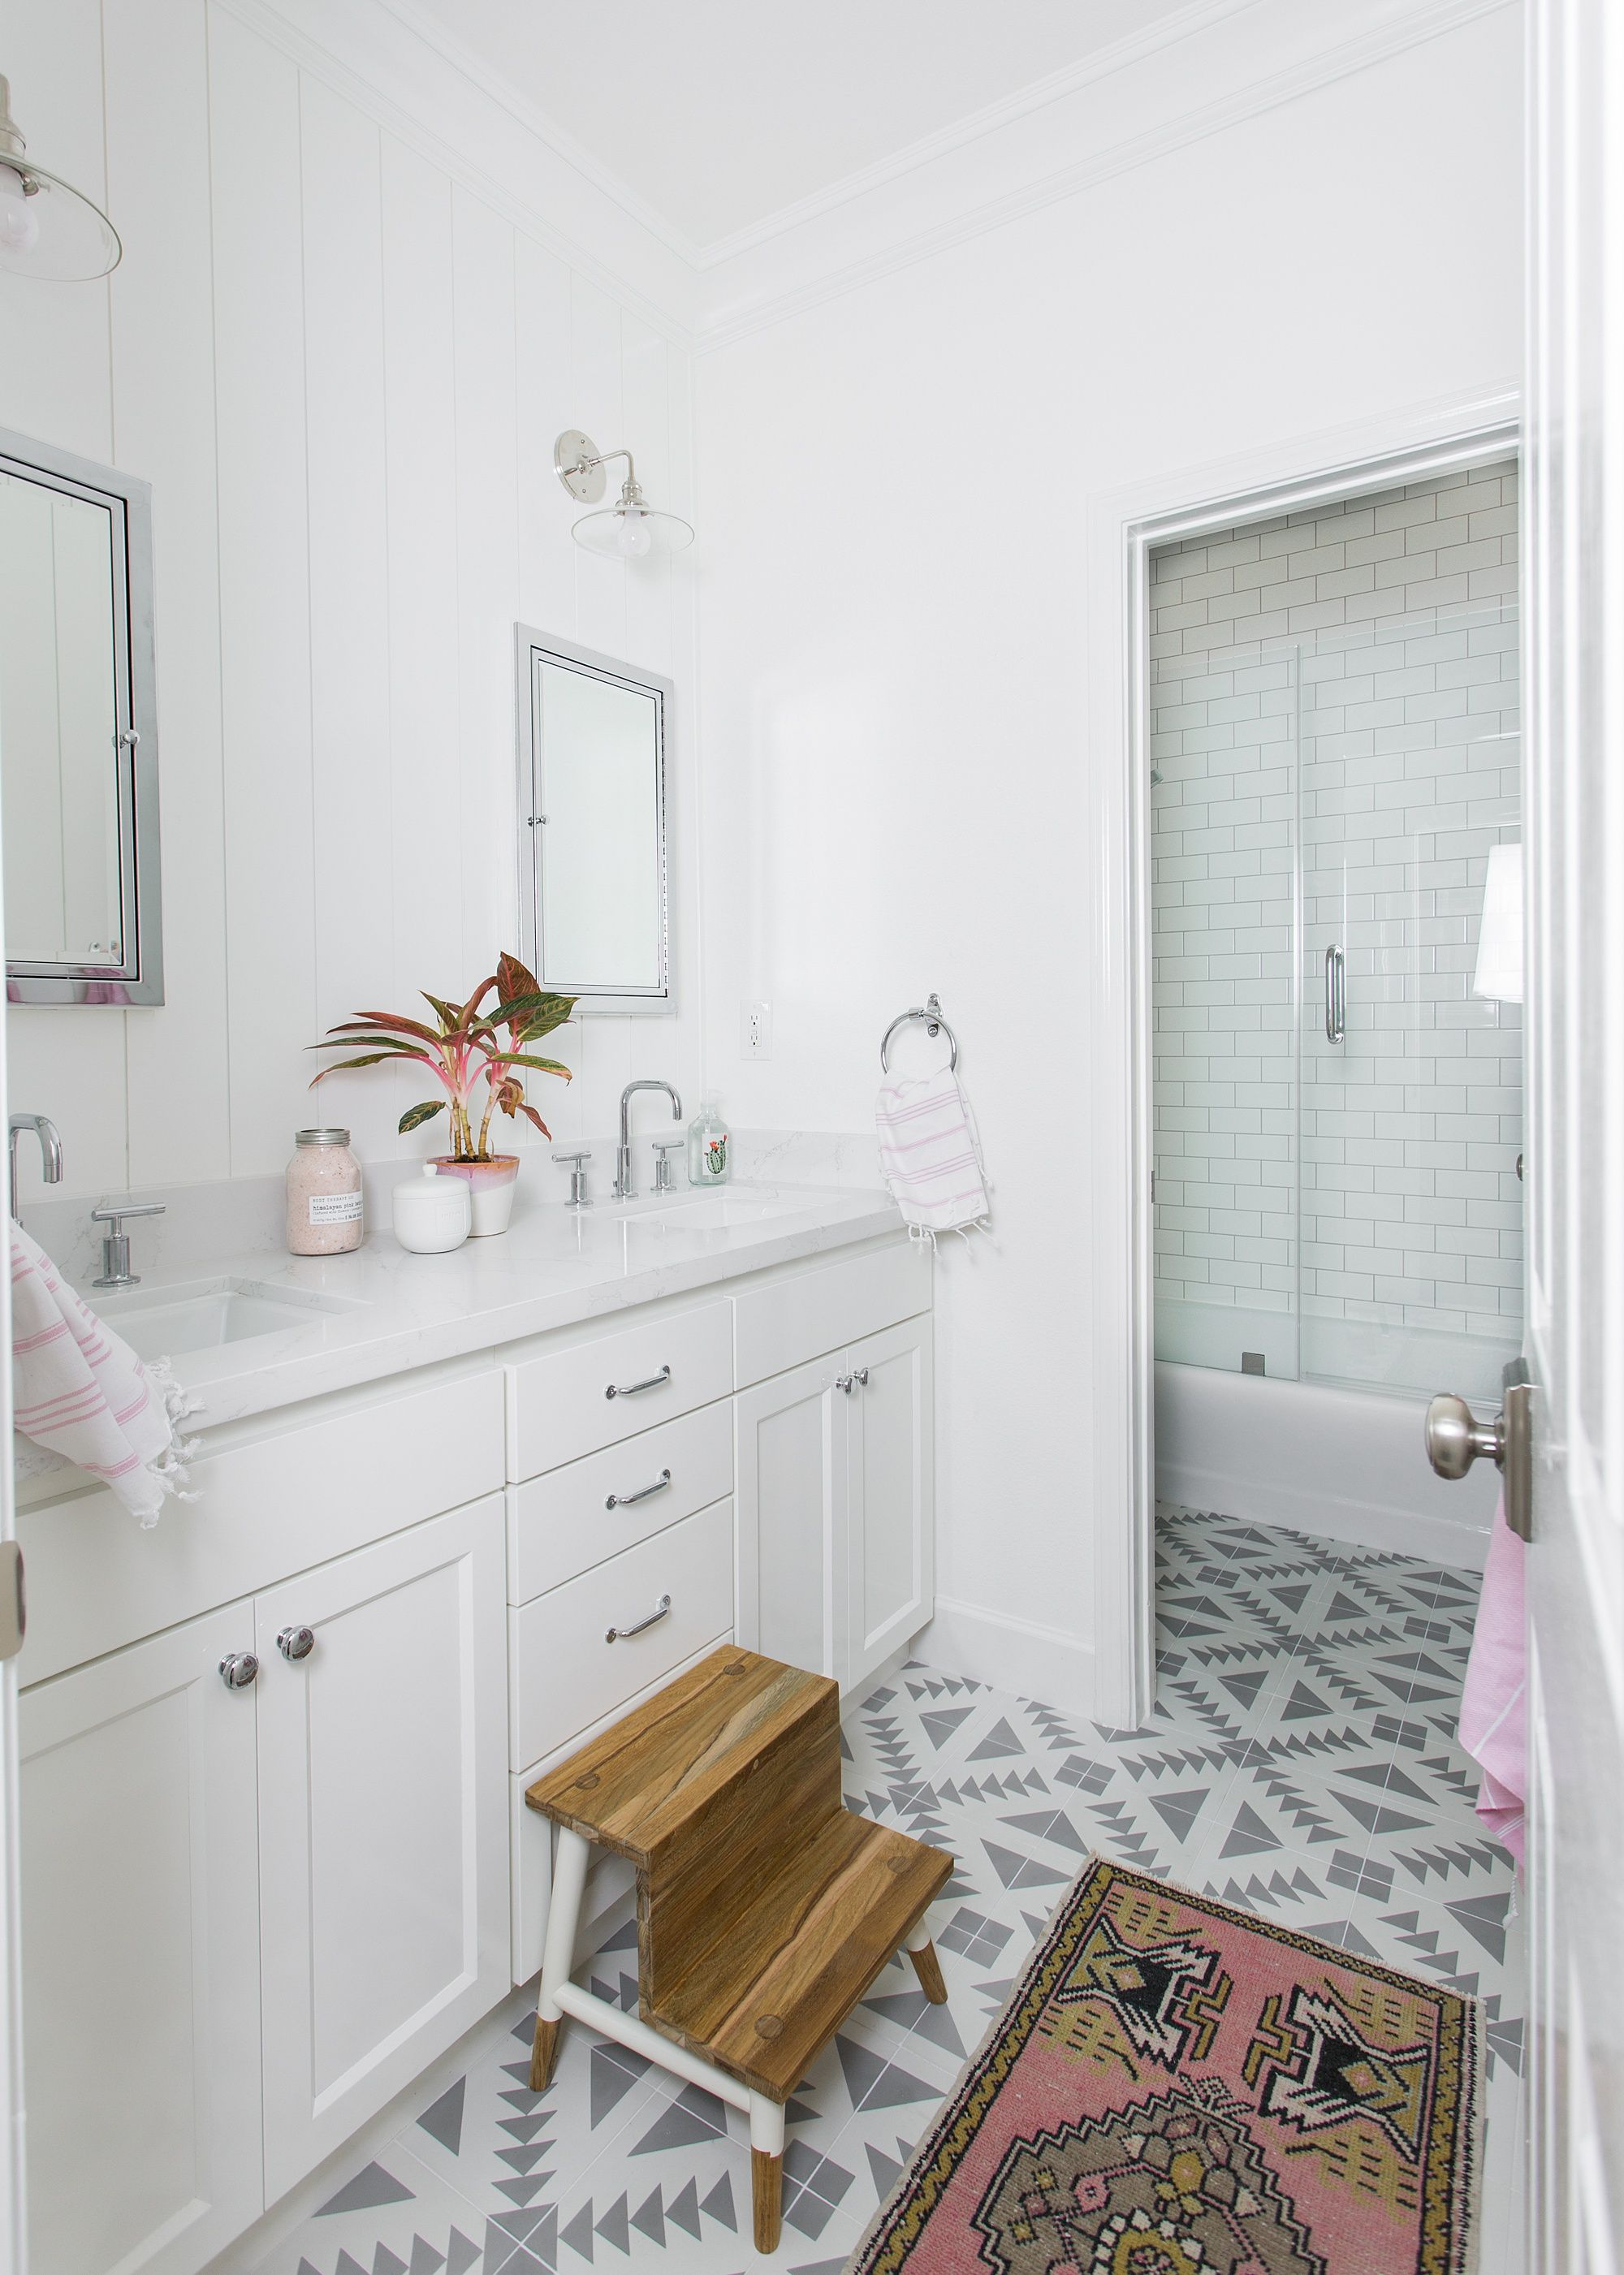 Little Girls Bathroom Design By Design Shop Interiors, Angie Edwards,